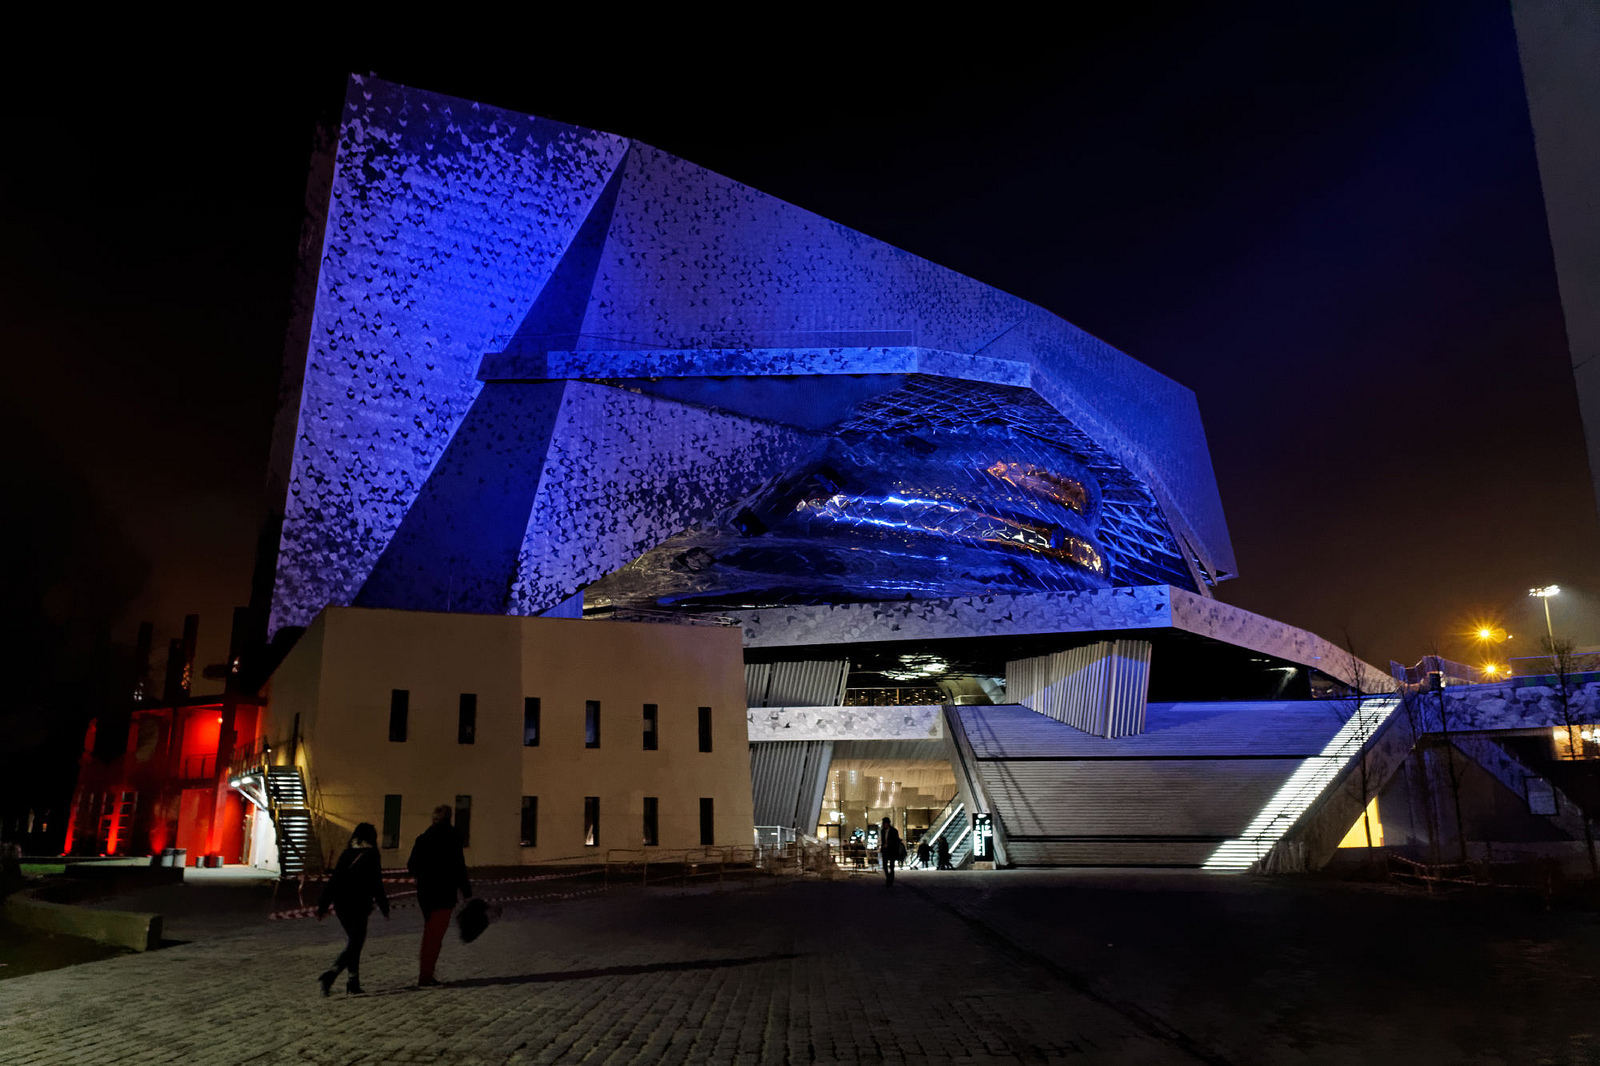 http://ad009cdnb.archdaily.net/wp-content/uploads/2015/04/55355c82e58ecee00800037e_jean-nouvel-loses-court-case-to-remove-his-name-from-philharmonie-de-paris_1.jpg